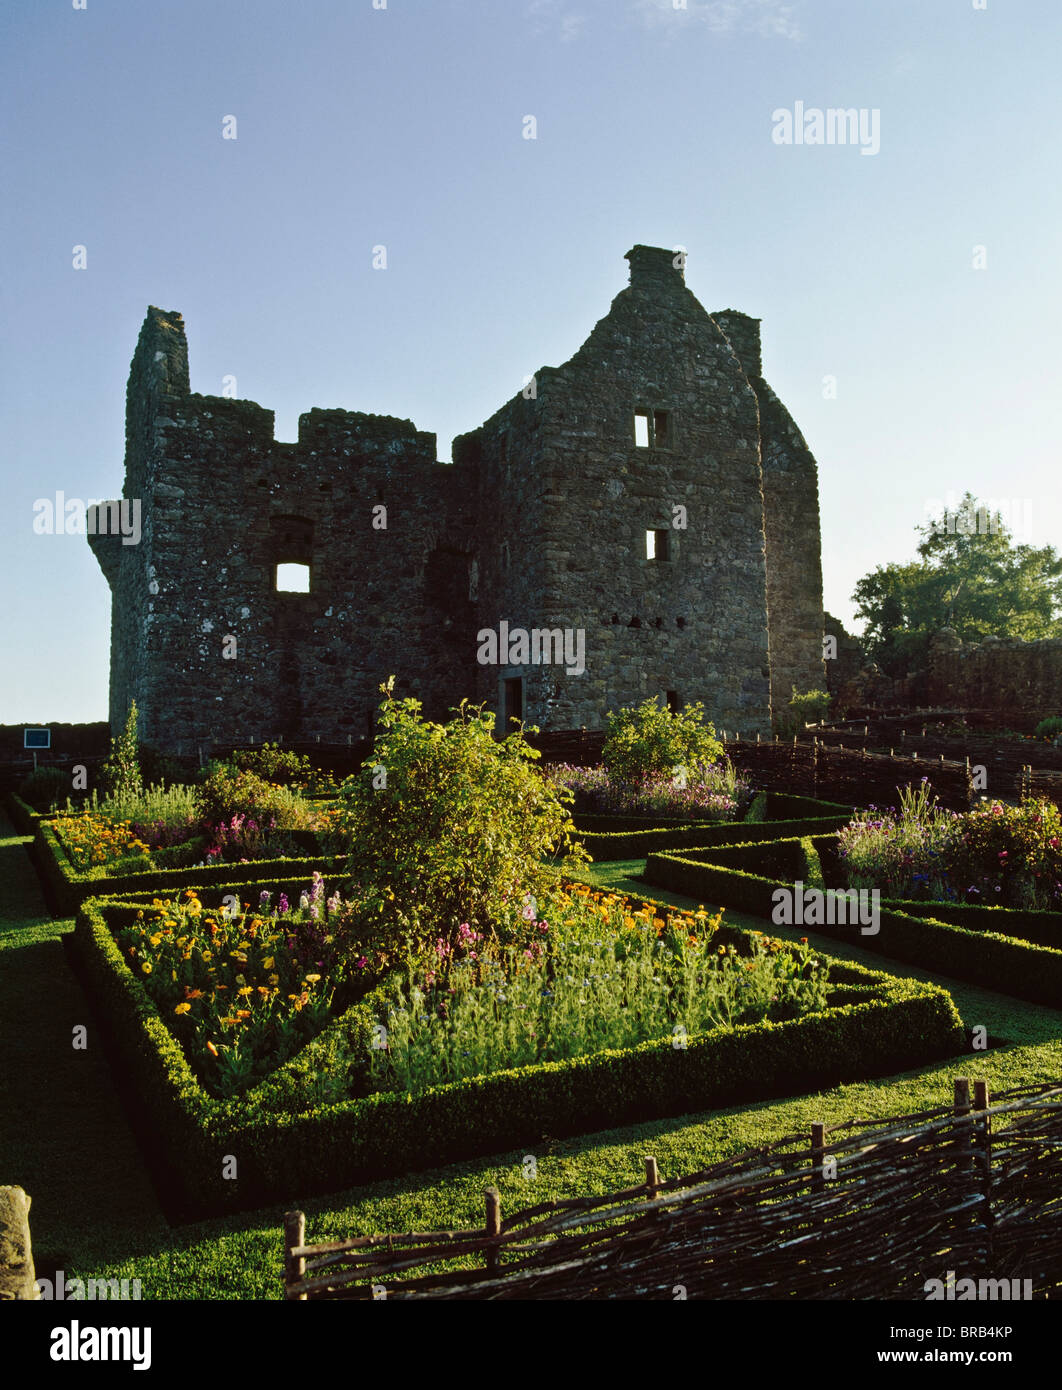 Old Castle Ruins,With Immaculate Formal Garden In Foreground - Stock Image